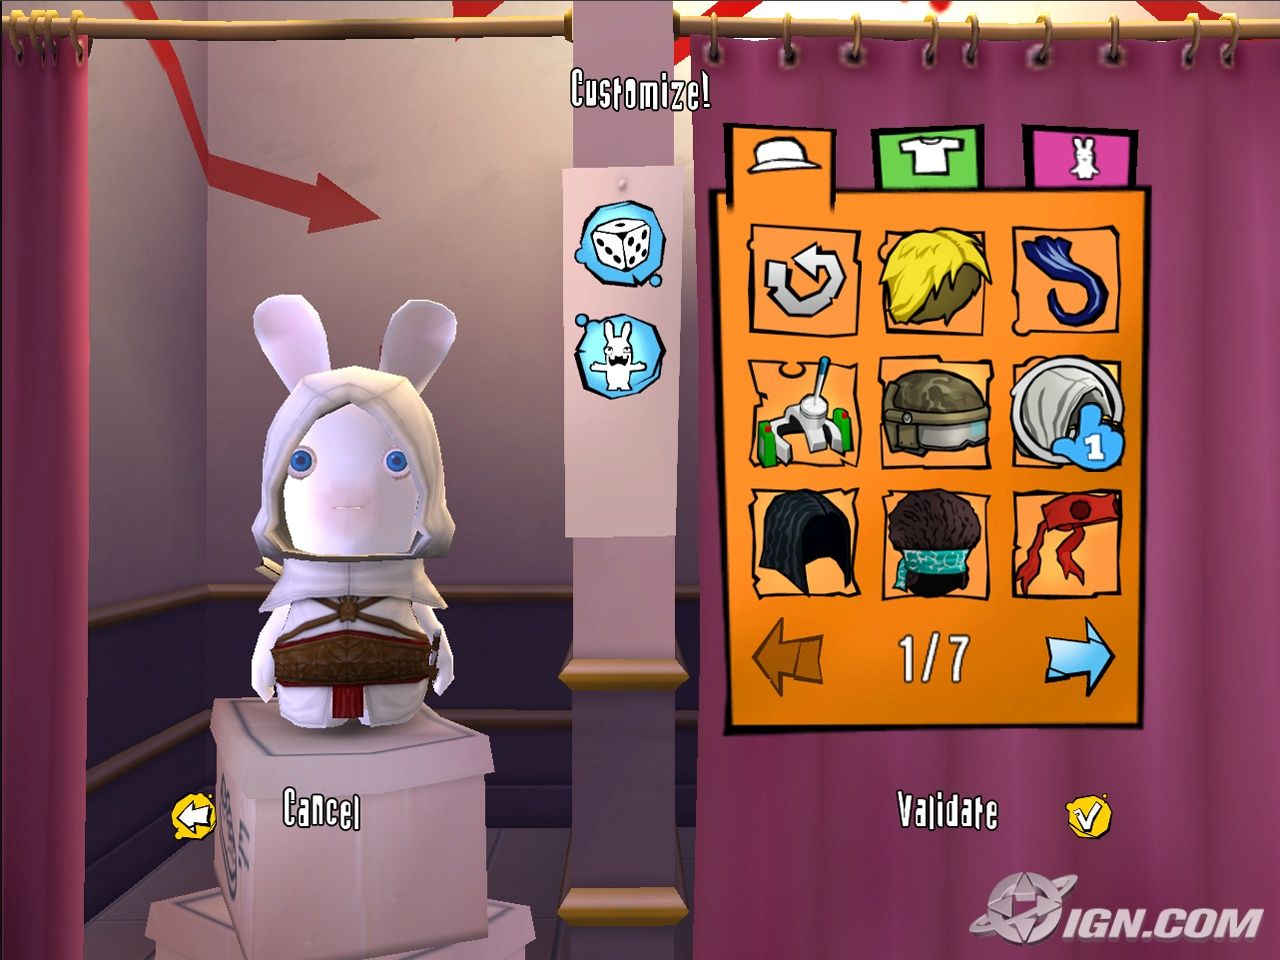 rayman raving rabbids 2 20071113055753950jpg 1280960 - Raving Rabbids Halloween Costume